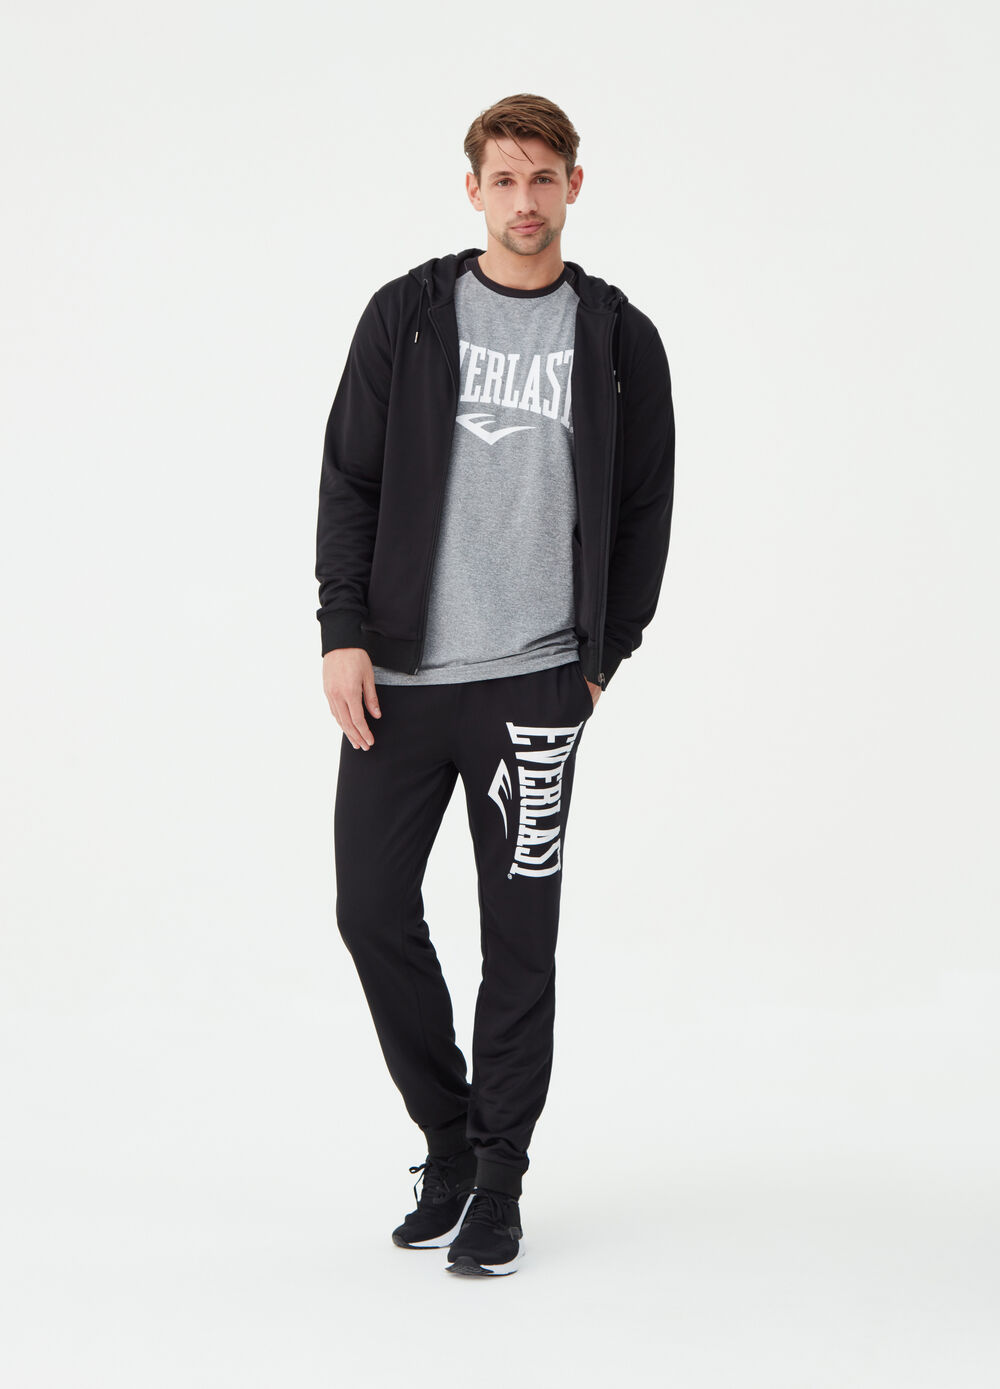 Everlast stretch sweatshirt with zip